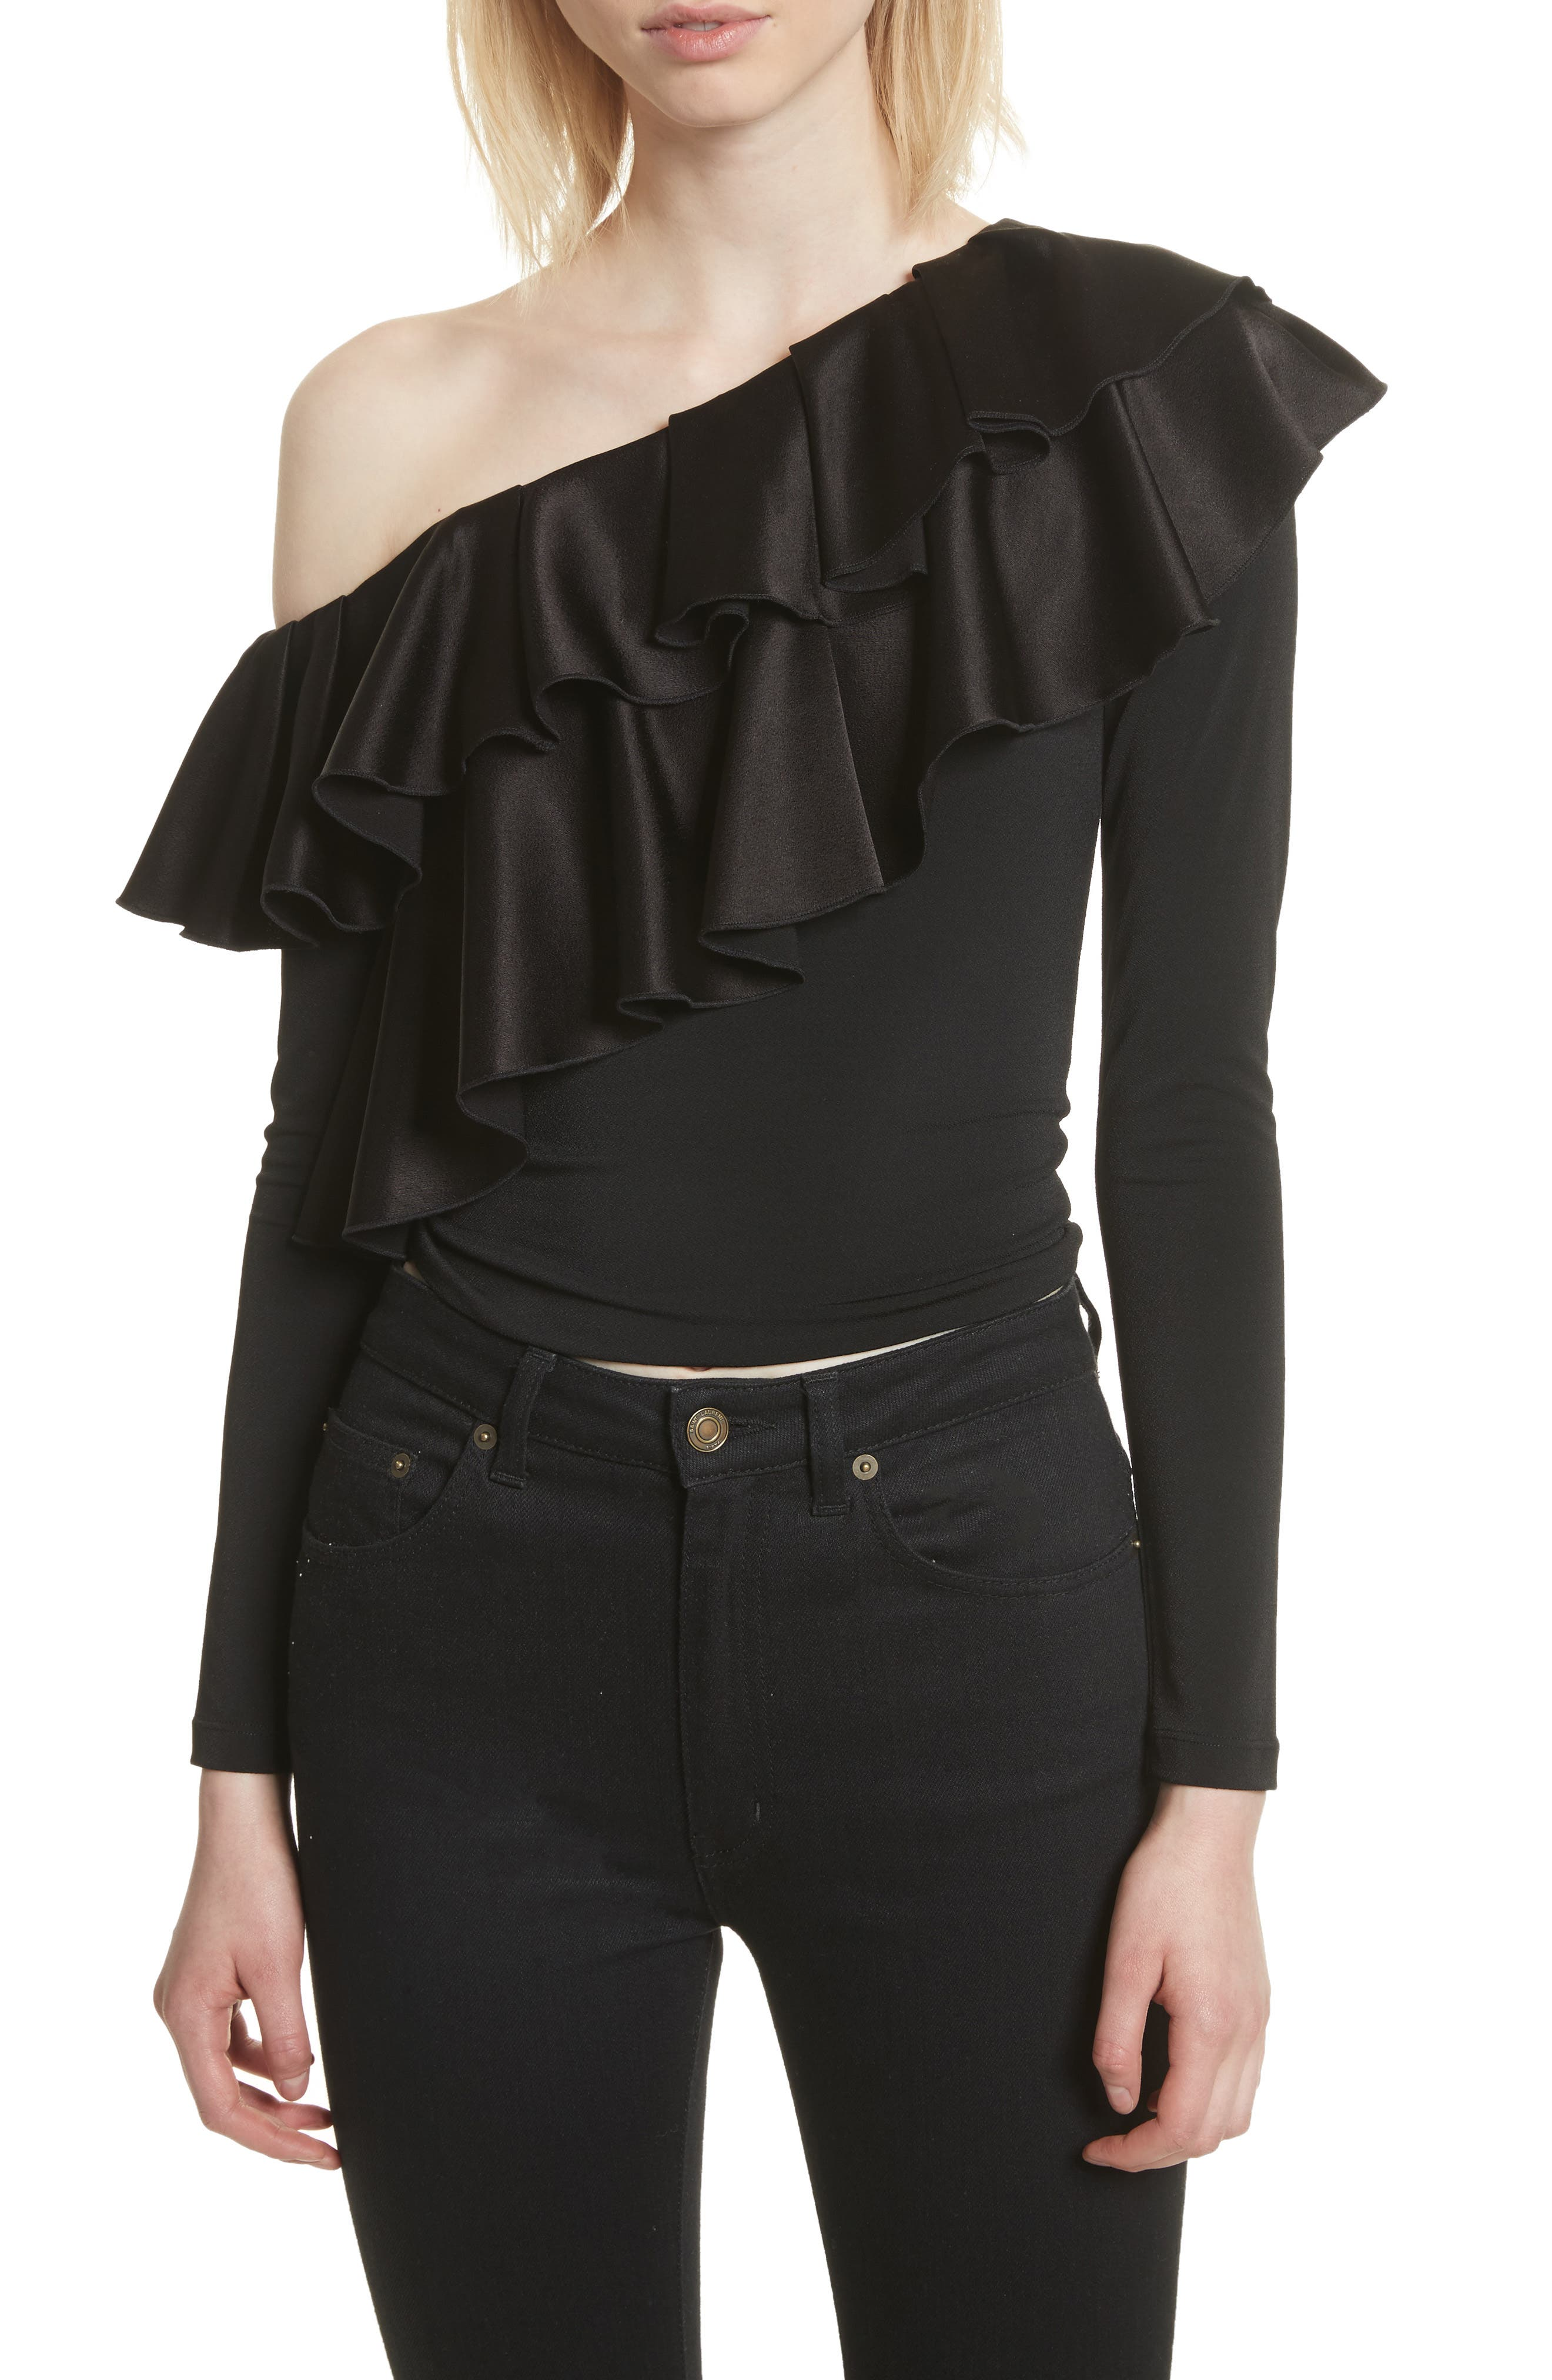 Izzy One-Shoulder Ruffle Crop Top,                             Main thumbnail 1, color,                             Black